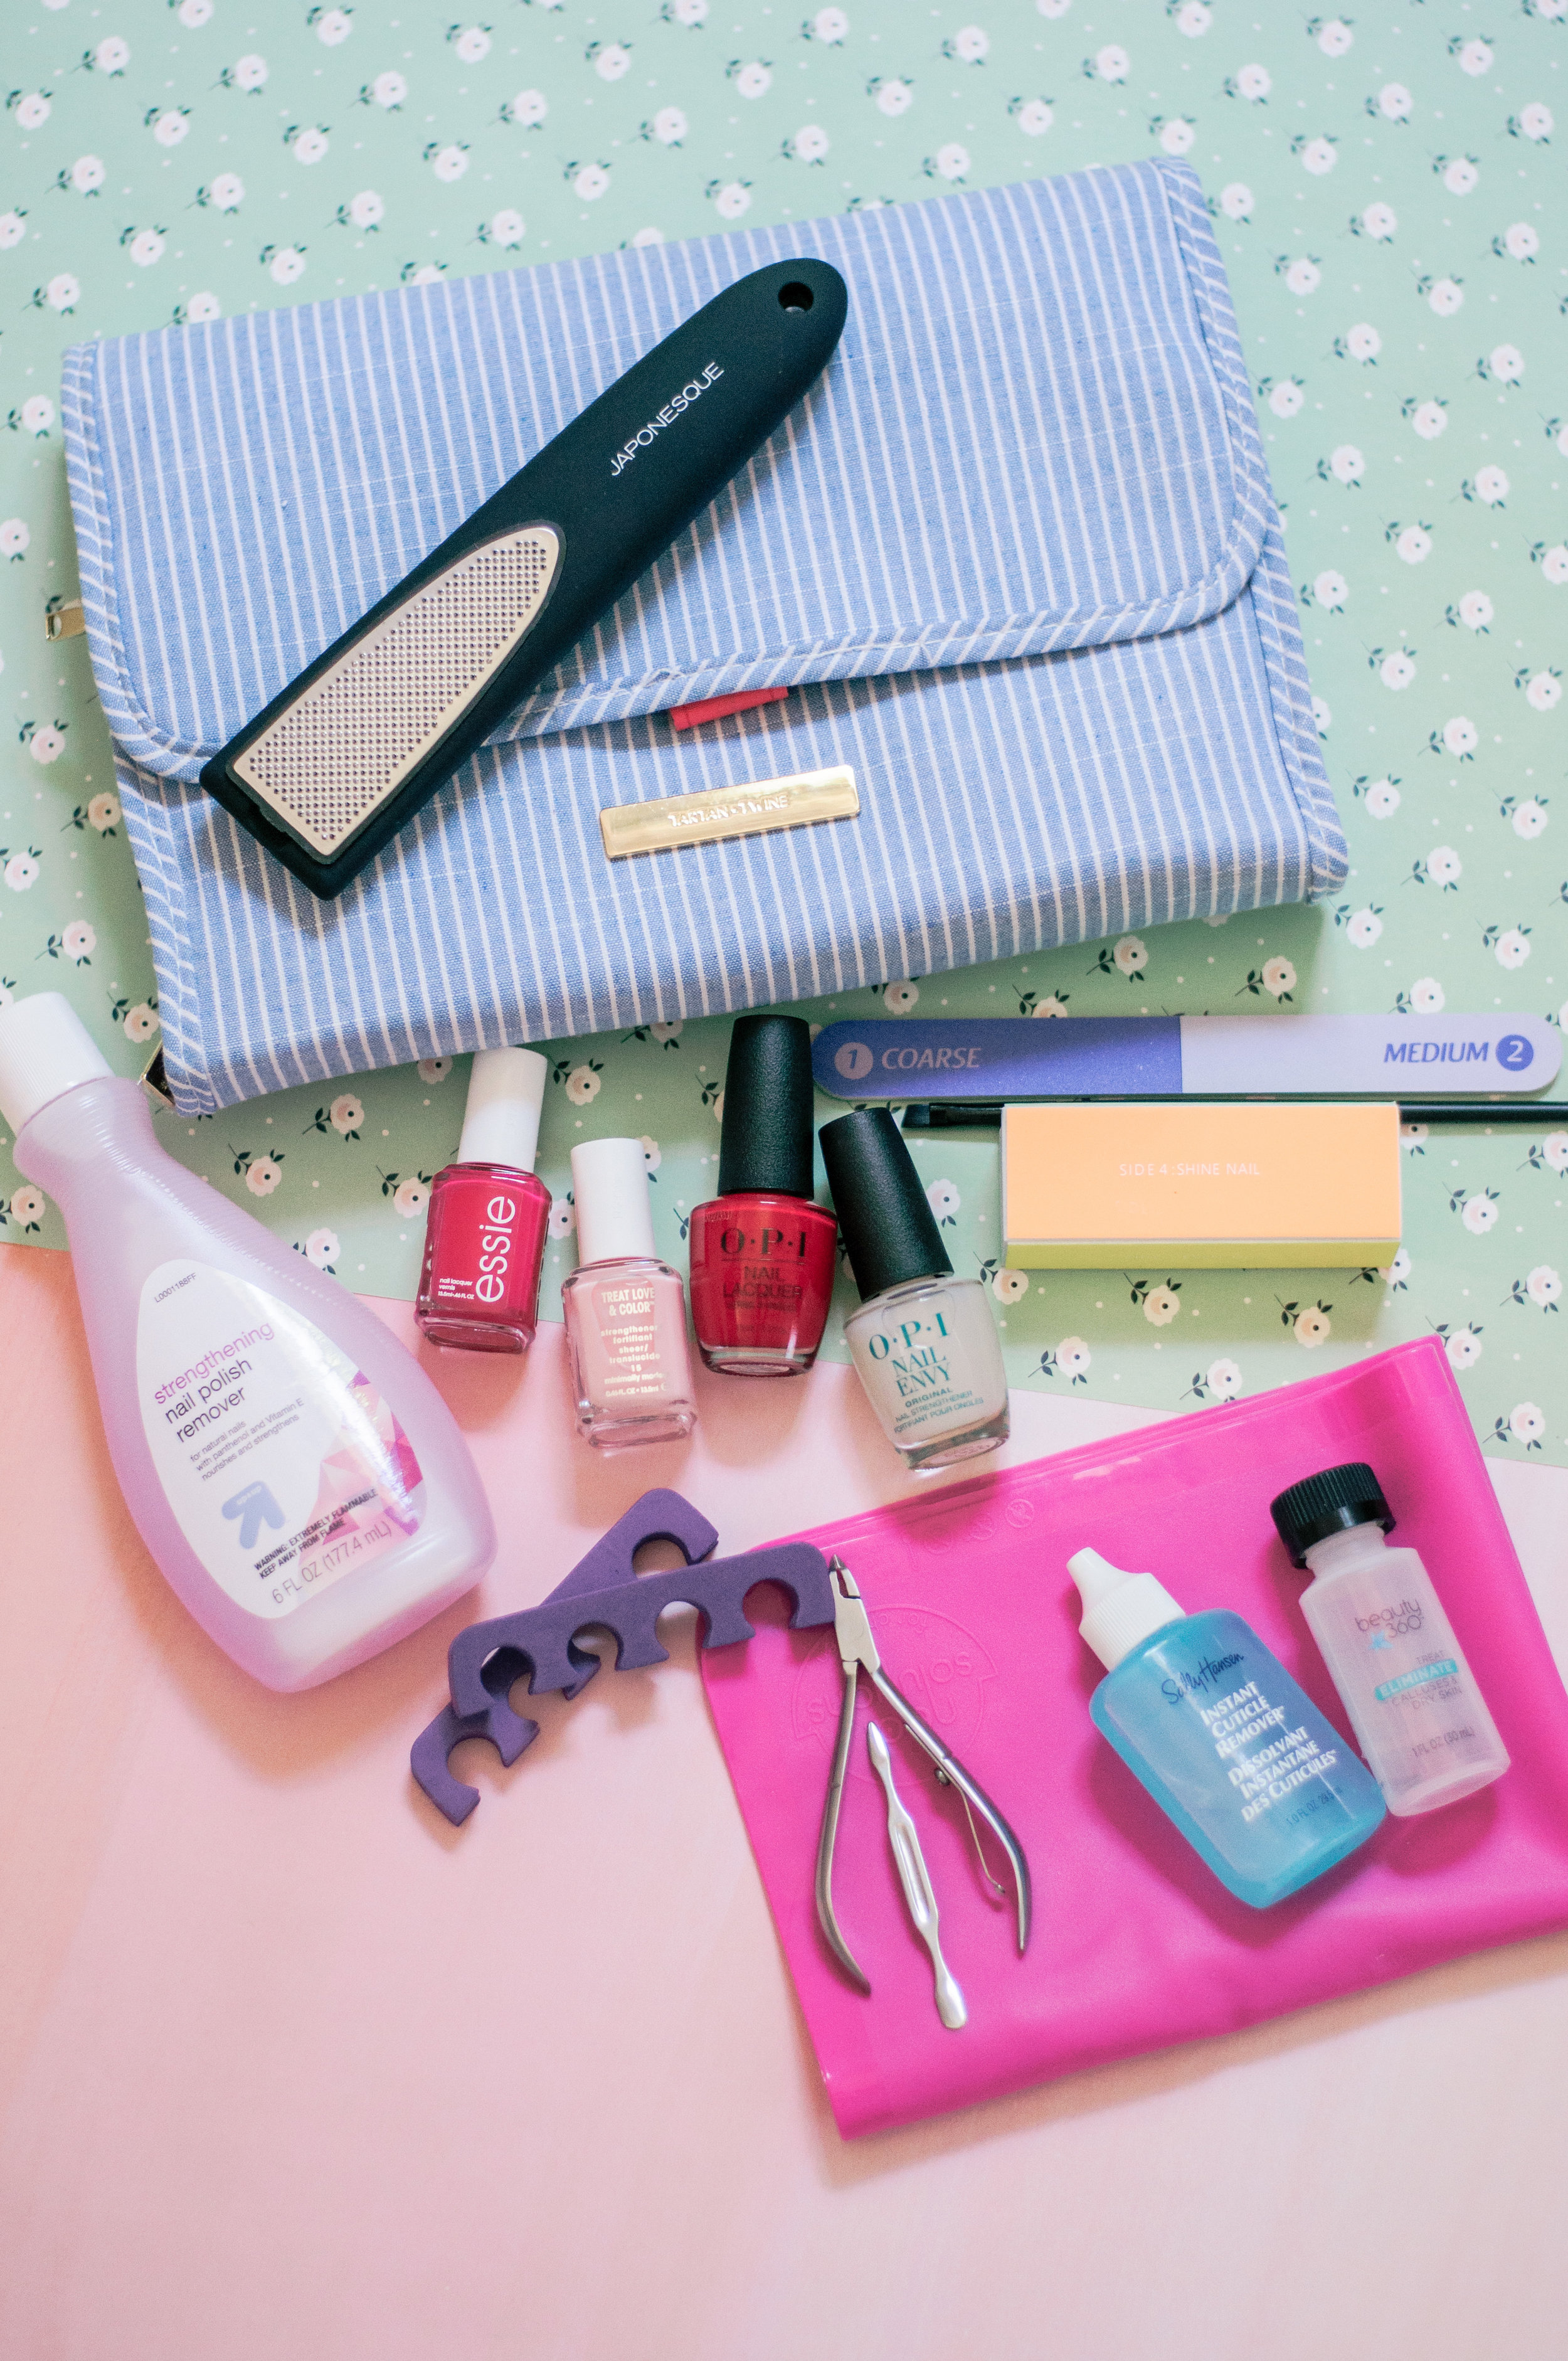 At Home DIY Manicure Pedicure Tips